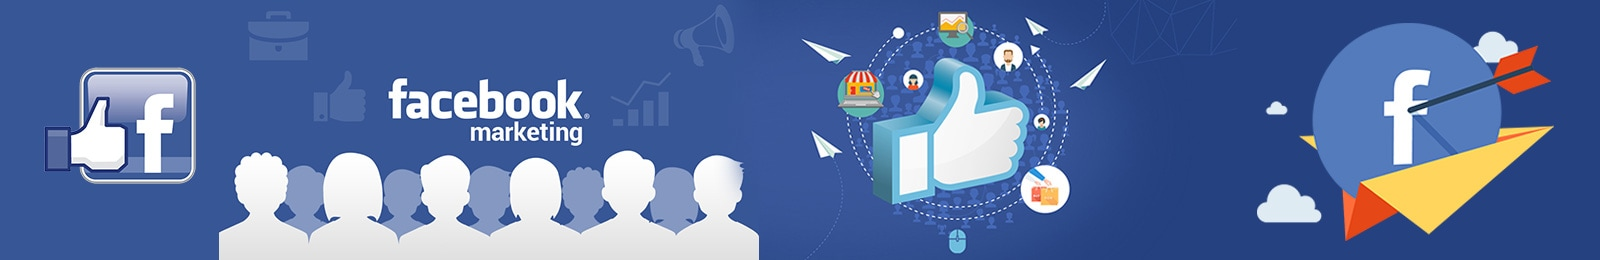 facebook-marketing-banner